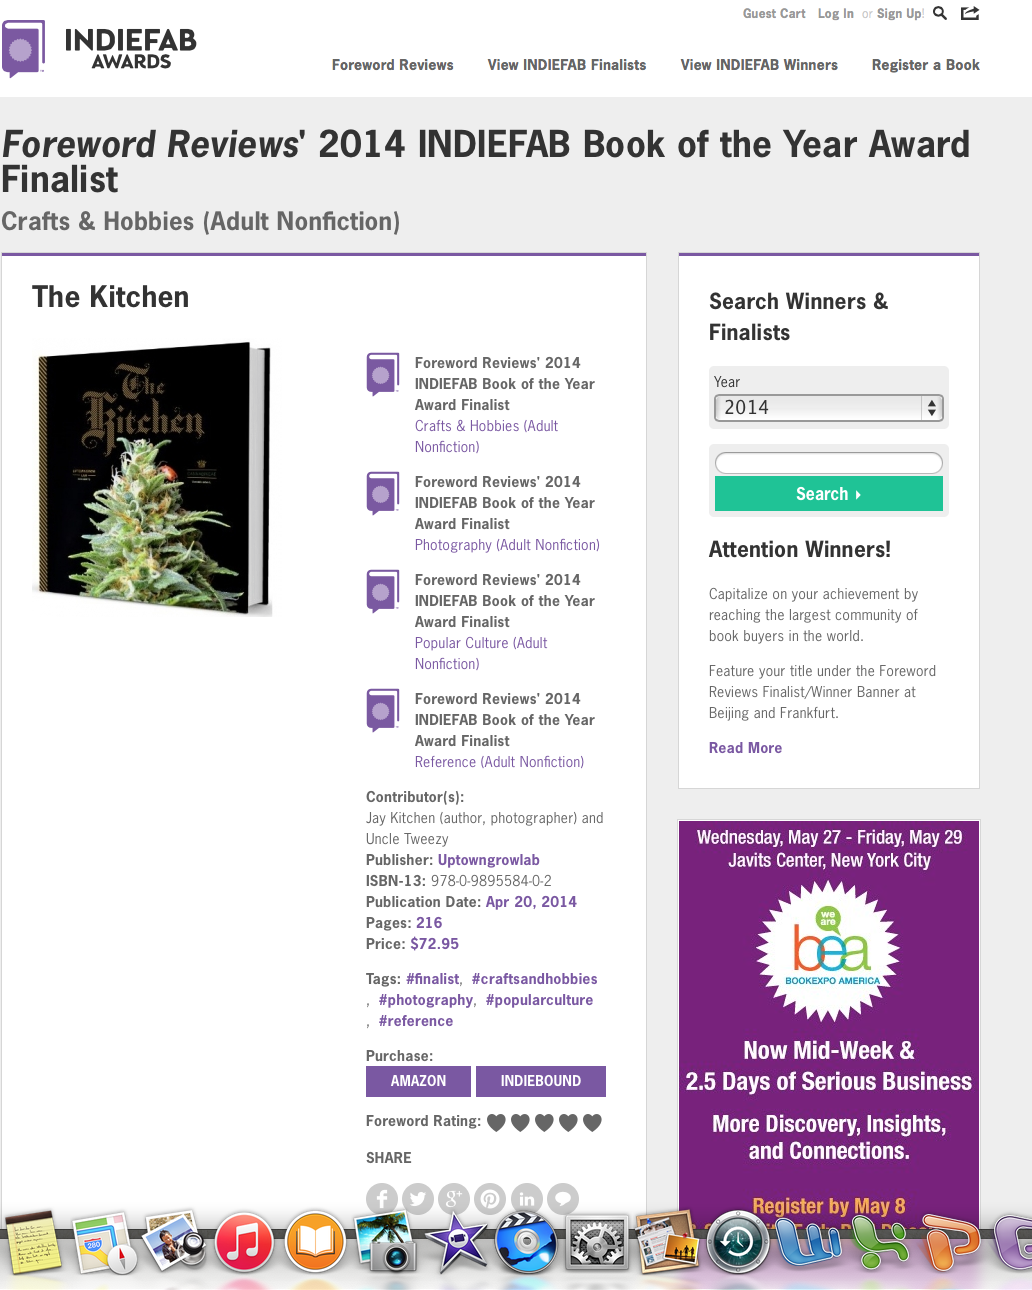 Foreward Revew's 2014 INDIEFAB BOOK OF THE YEAR FINALIST